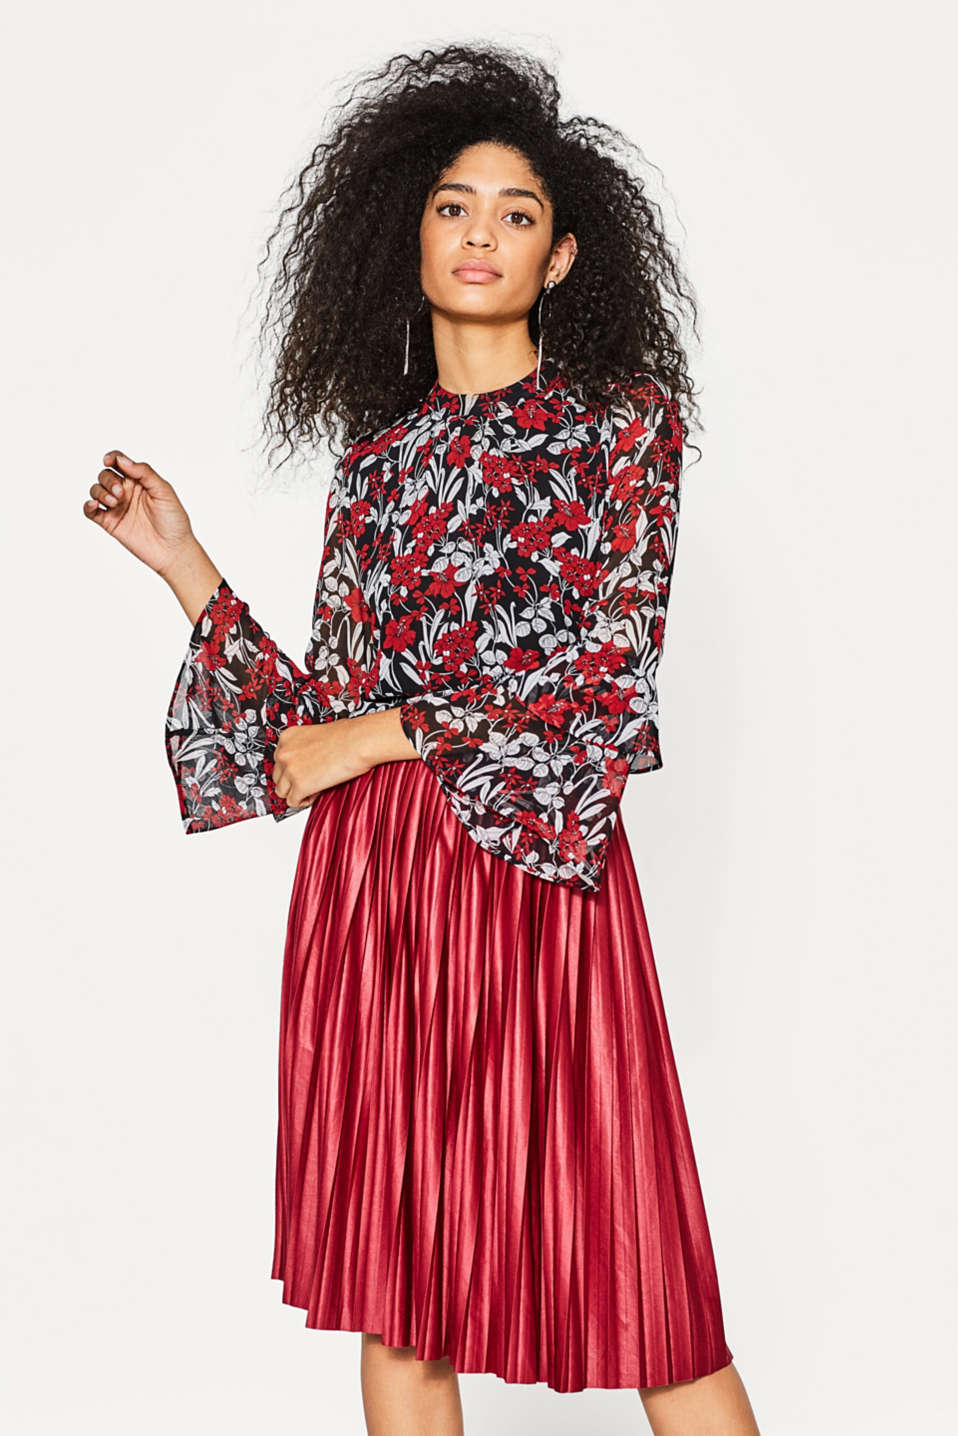 Esprit - Flowing blouse with a floral print